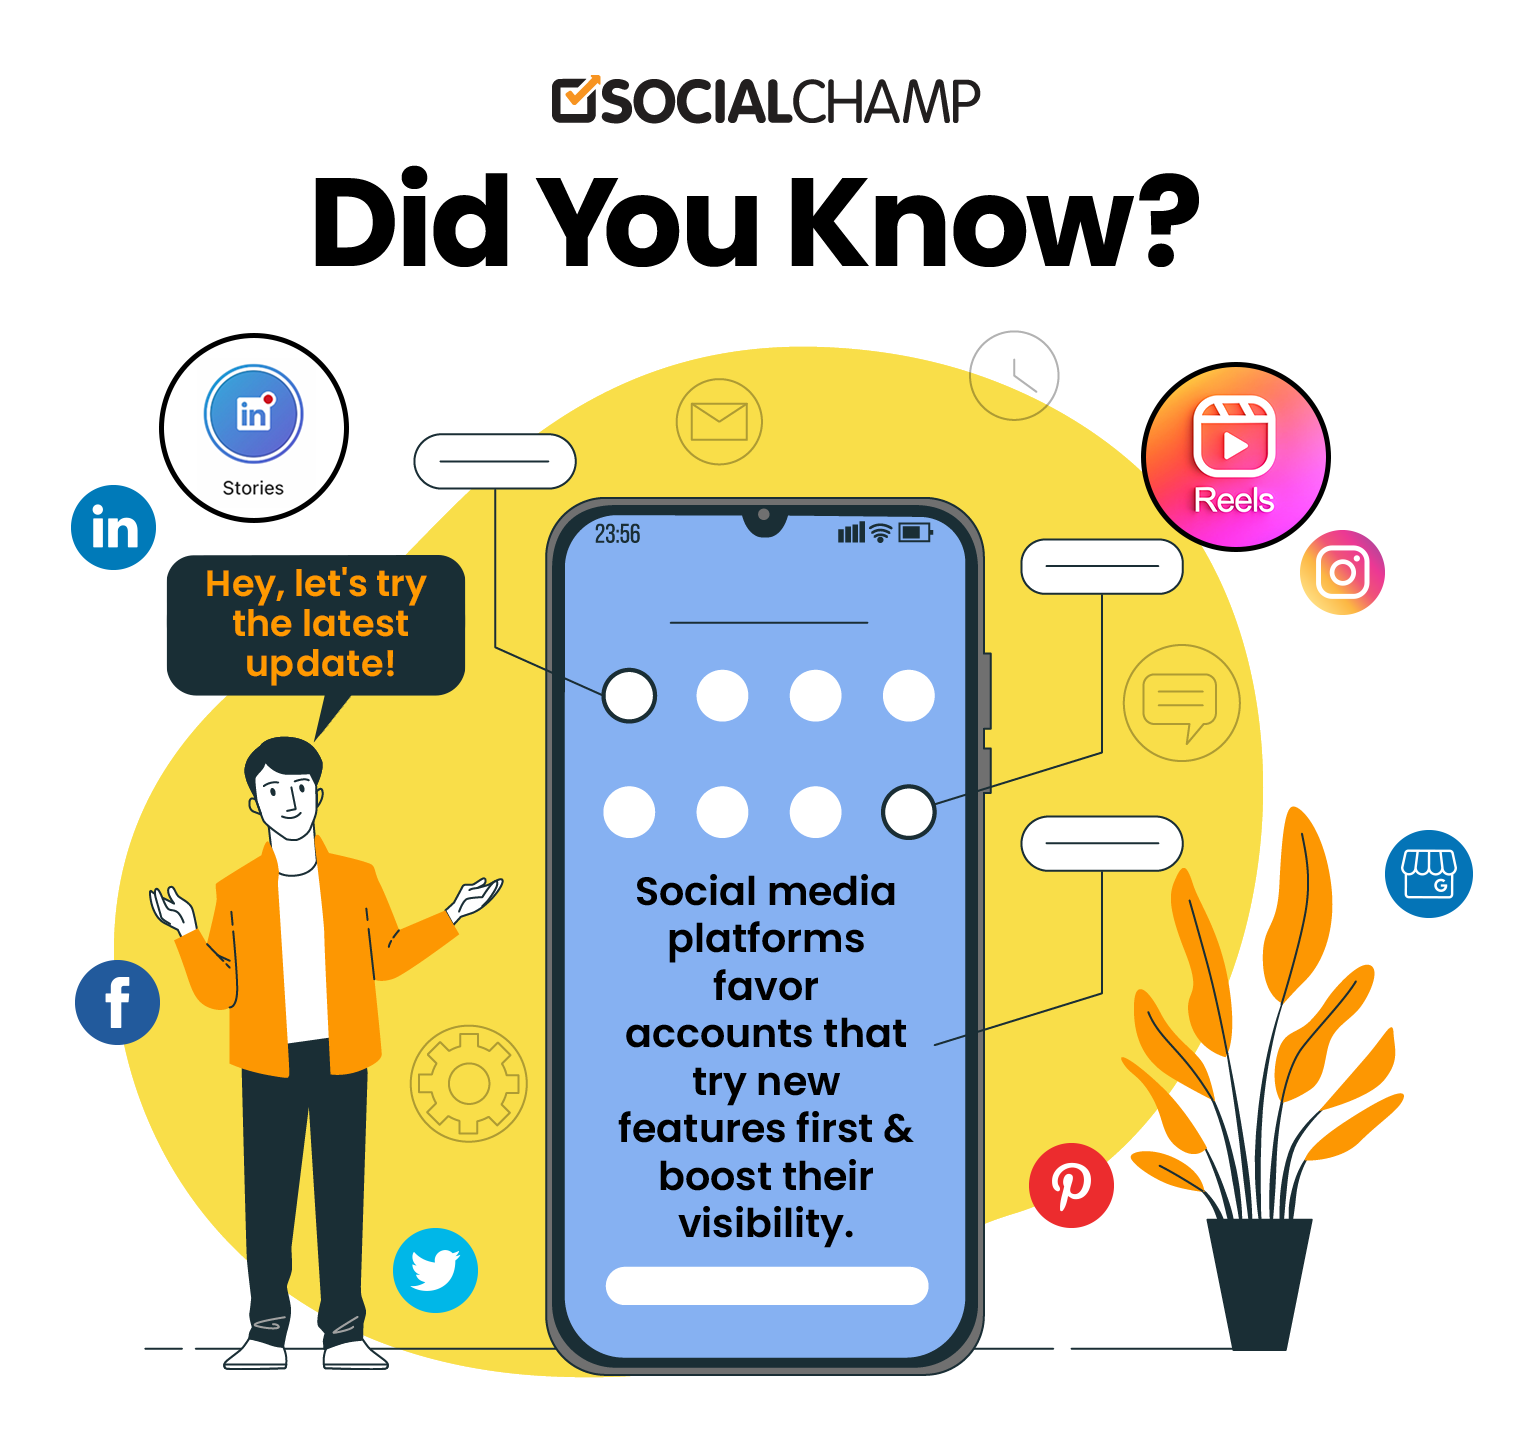 Did you know social champ